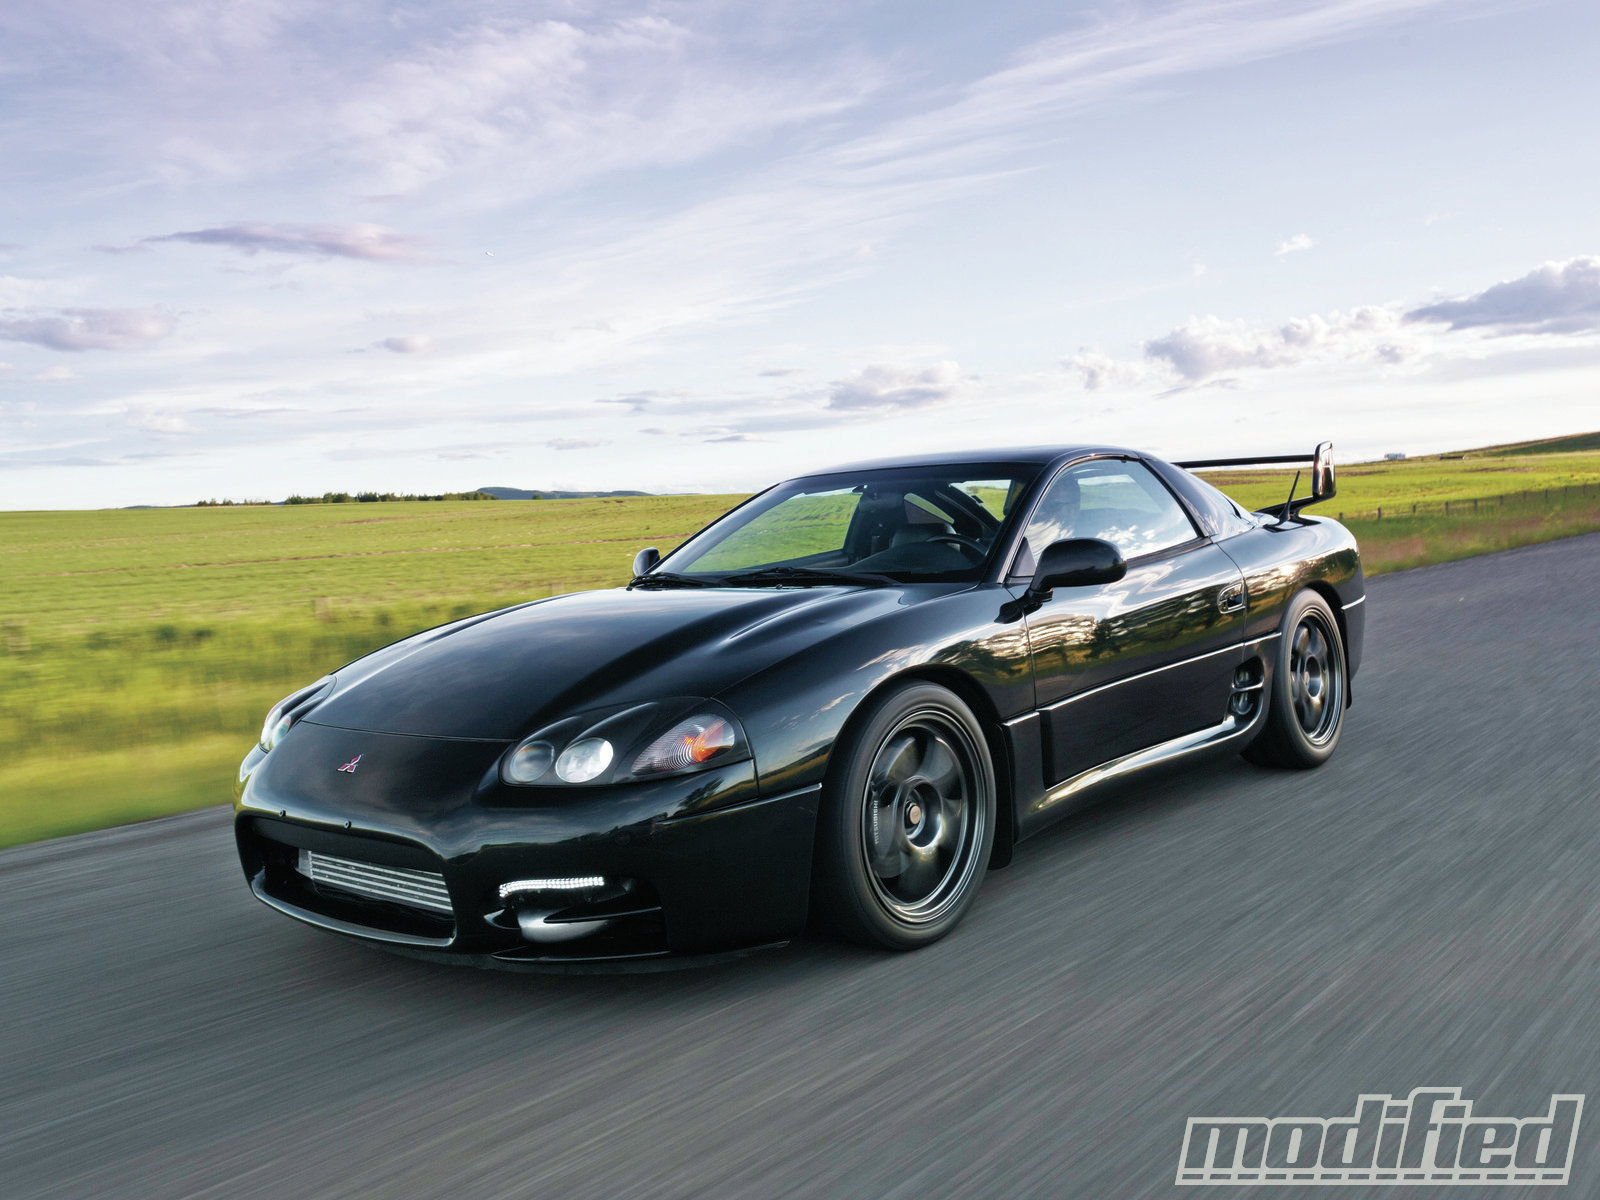 hight resolution of 1999 mitsubishi 3000gt 19 mitsubishi 3000gt 19